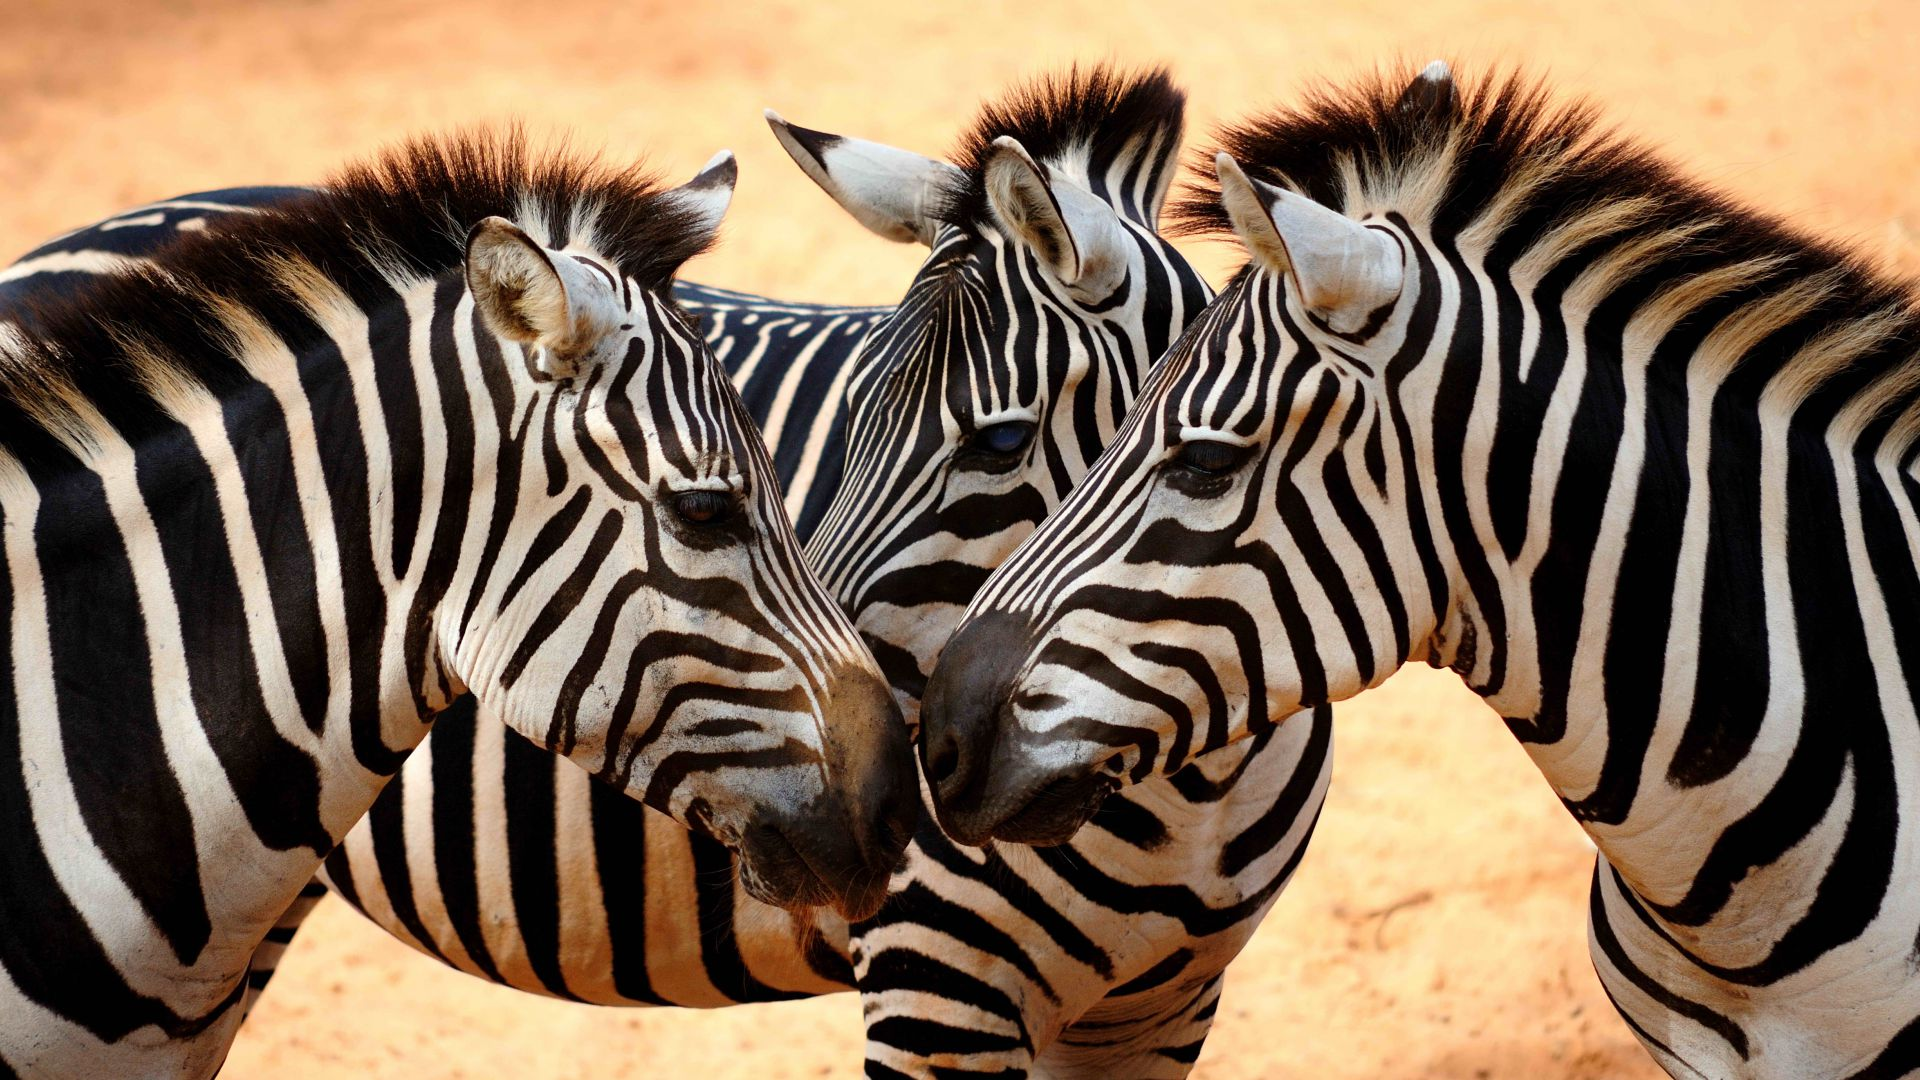 Zebra, couple, cute animals (horizontal)